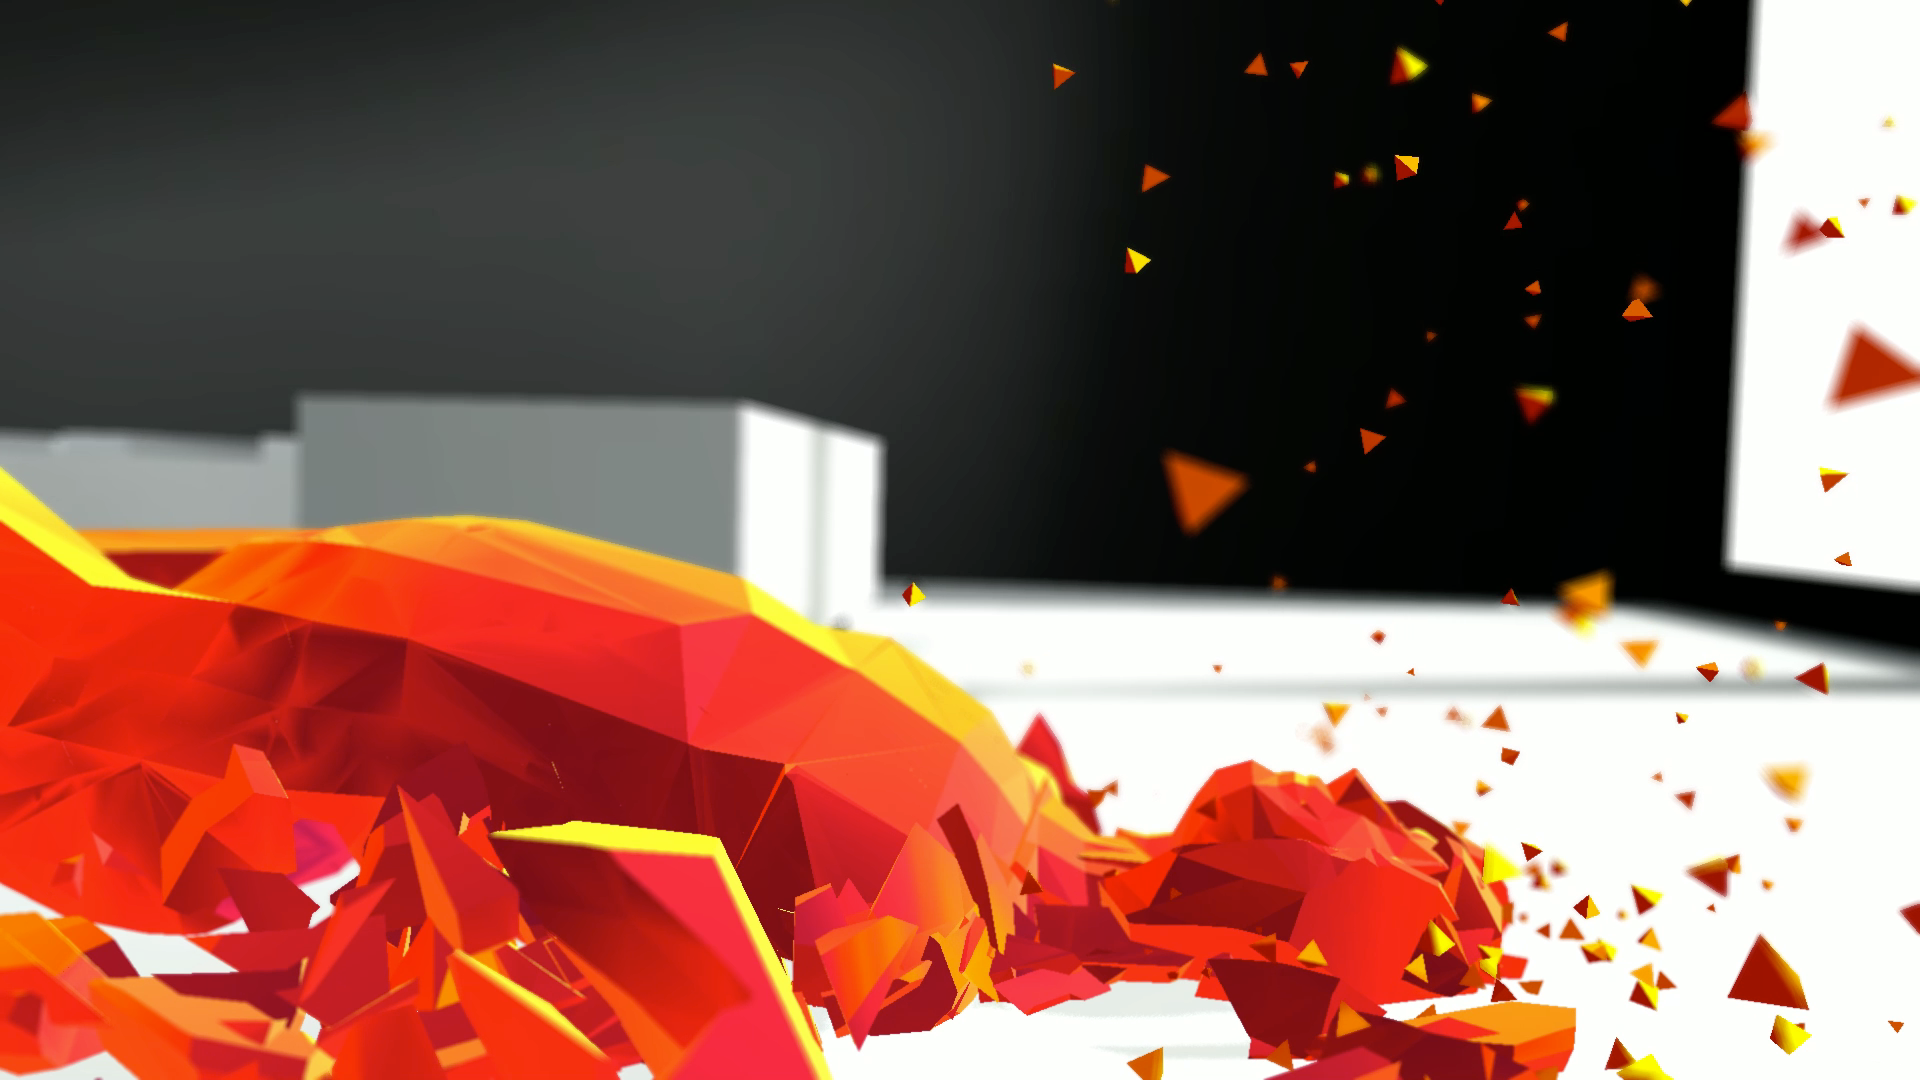 Lageekroom blog gaming ciné série Superhot VR